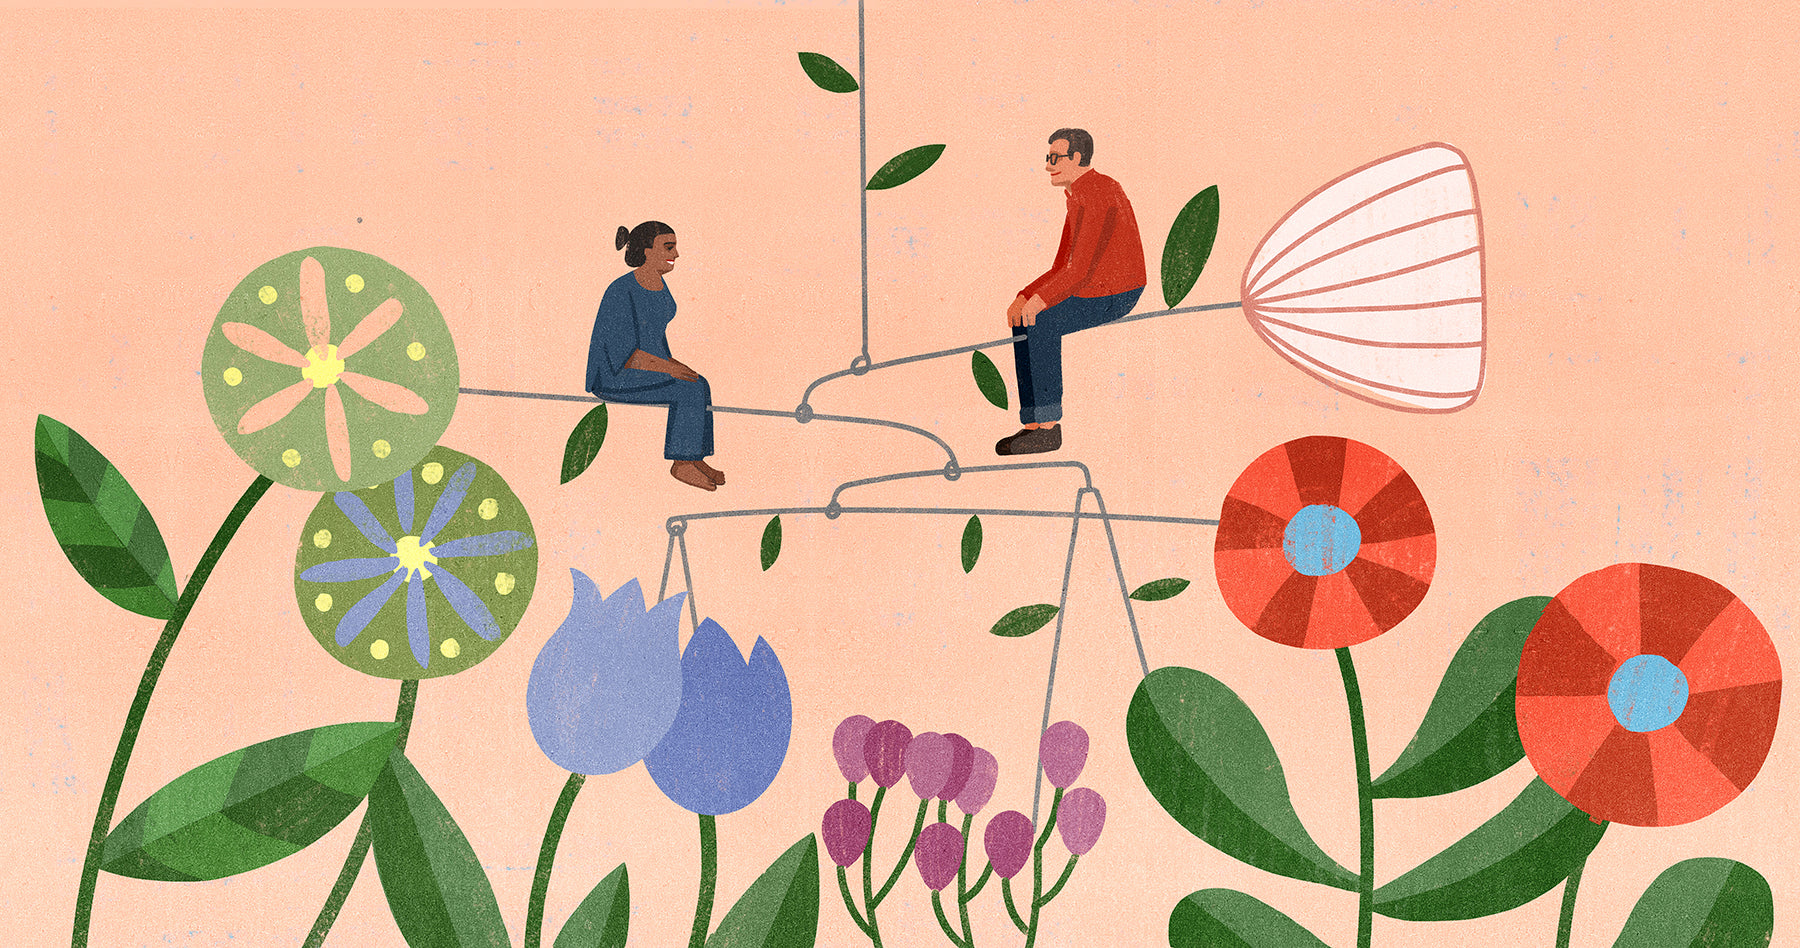 Illustration of Bookhou founders Arounna and John, sittting on a mobile similar to the wooden fixtures that John fabricates. Surrounding them are patterns that are indicative of Arounna's hand made blankets and handbags.